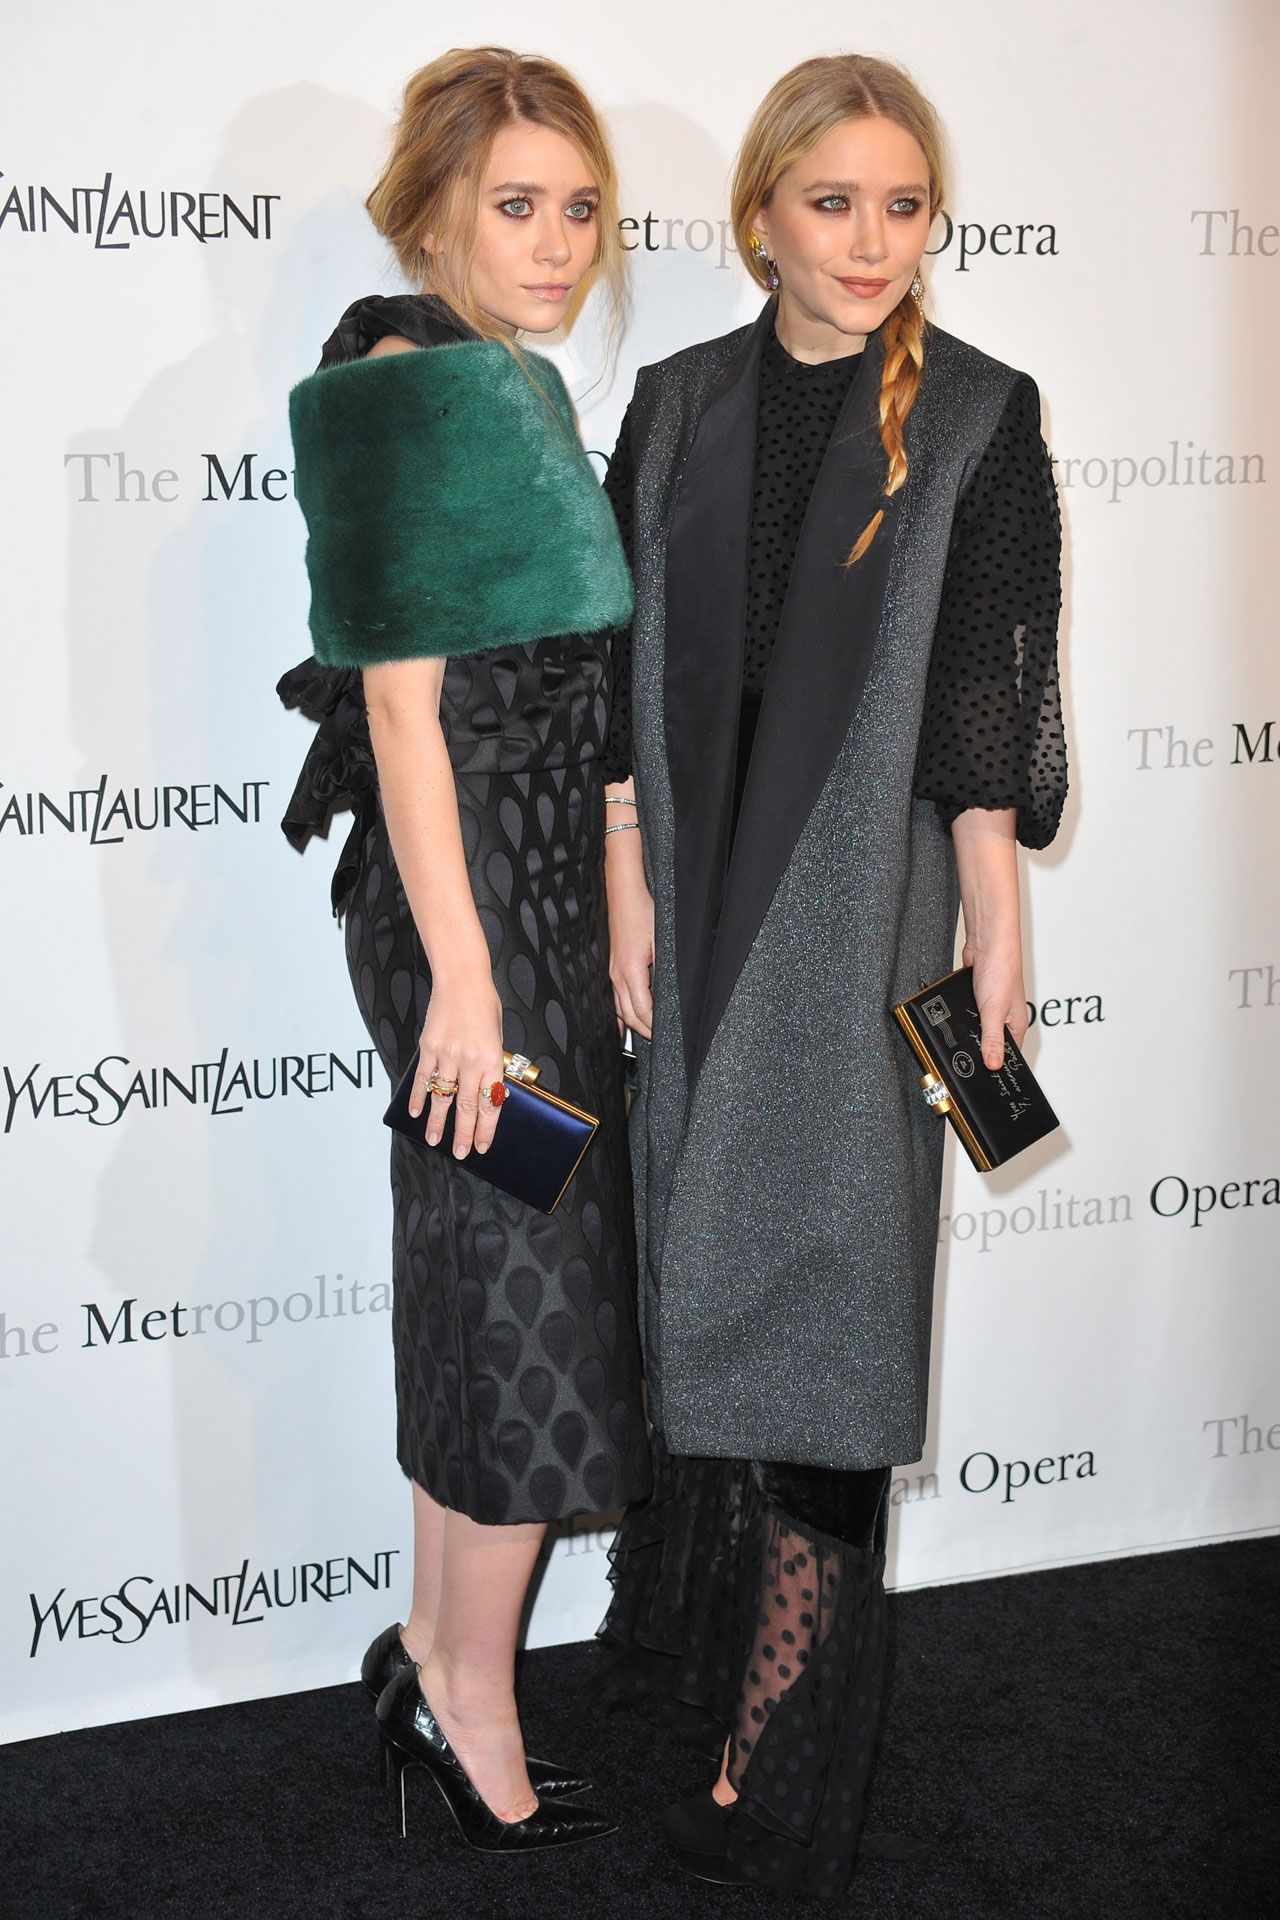 Olsen Twins Collaborate With Damien Hirst Ashley Olsen Style Olsen Twins Mary Kate